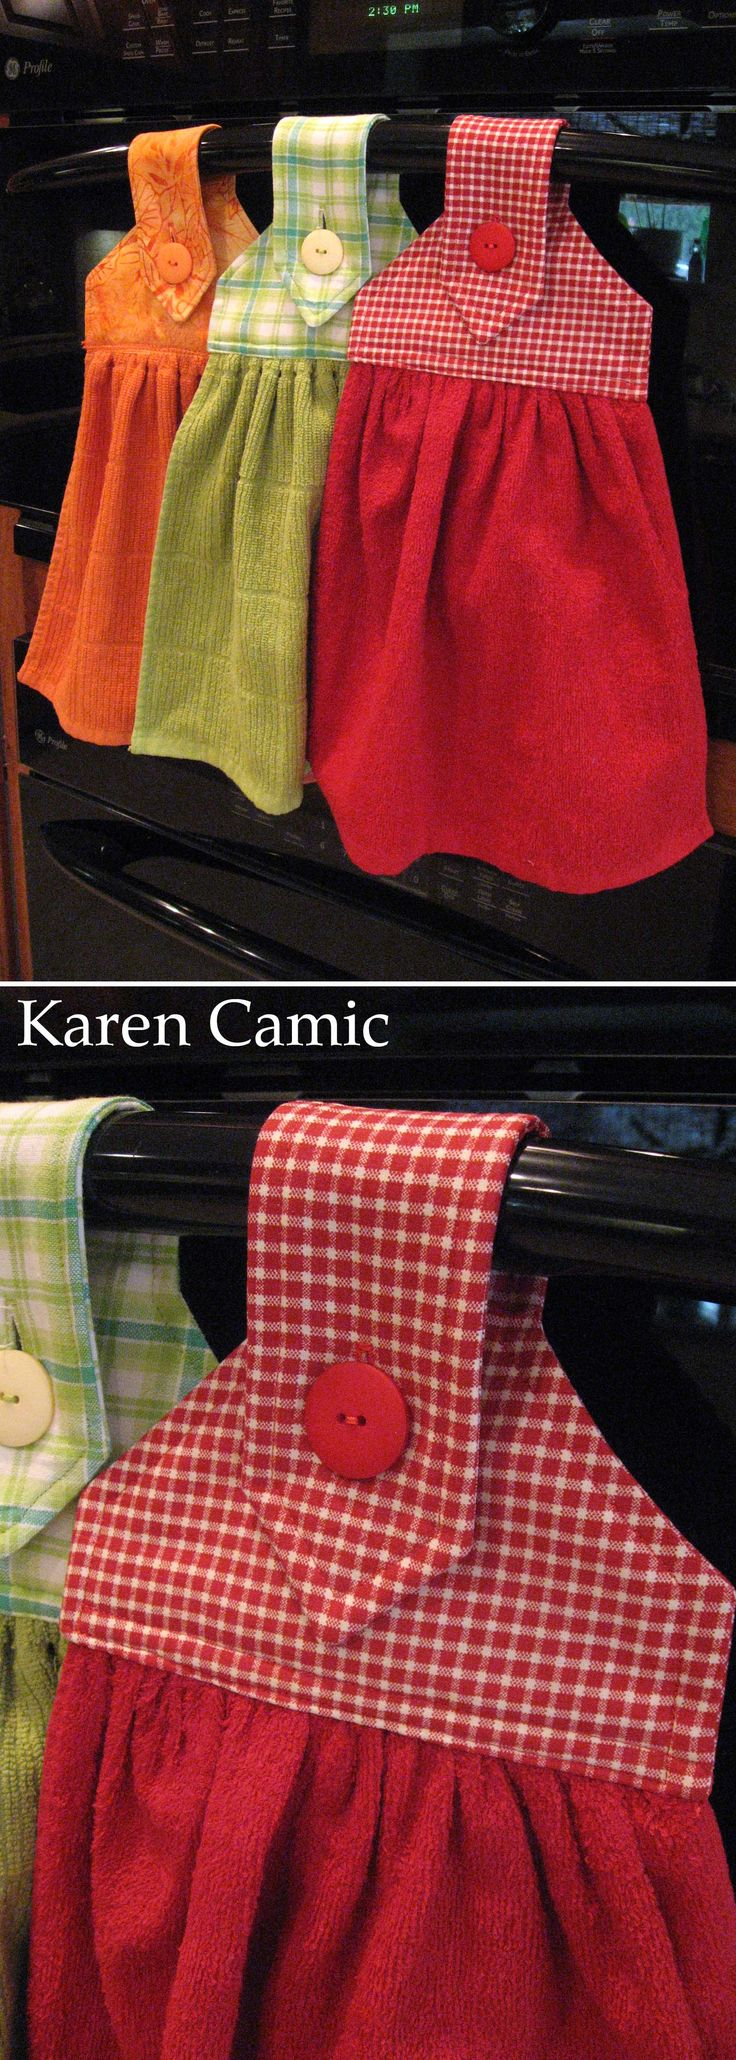 Oven Hand Towels - instructions from kleiosbelly.wordpress.com